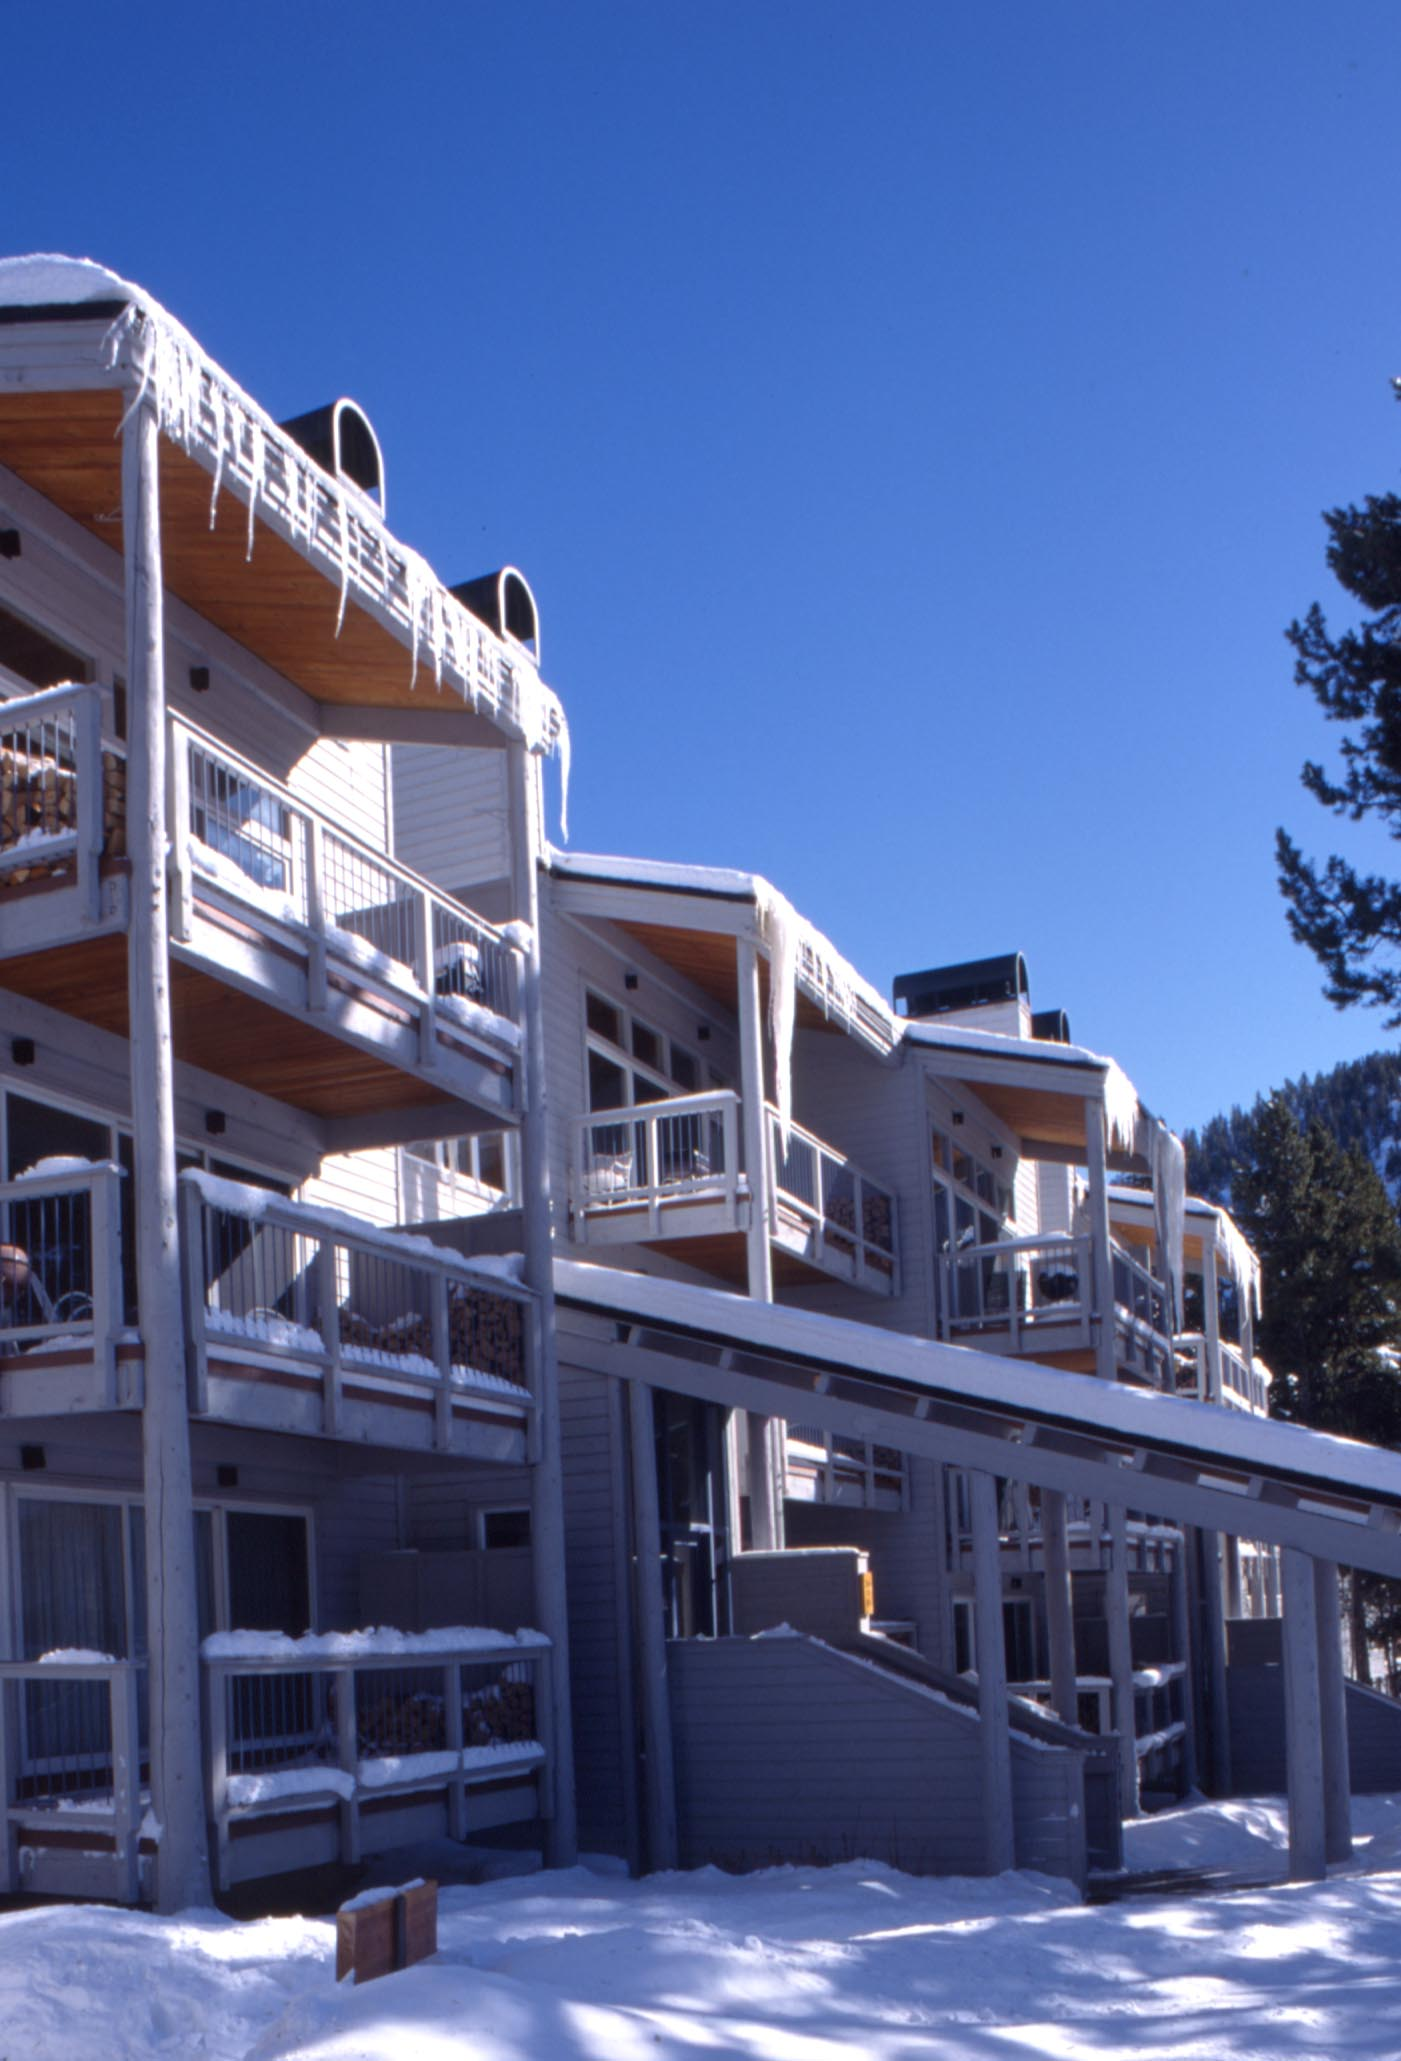 Exterior of condos at Keystone Village. 35mm